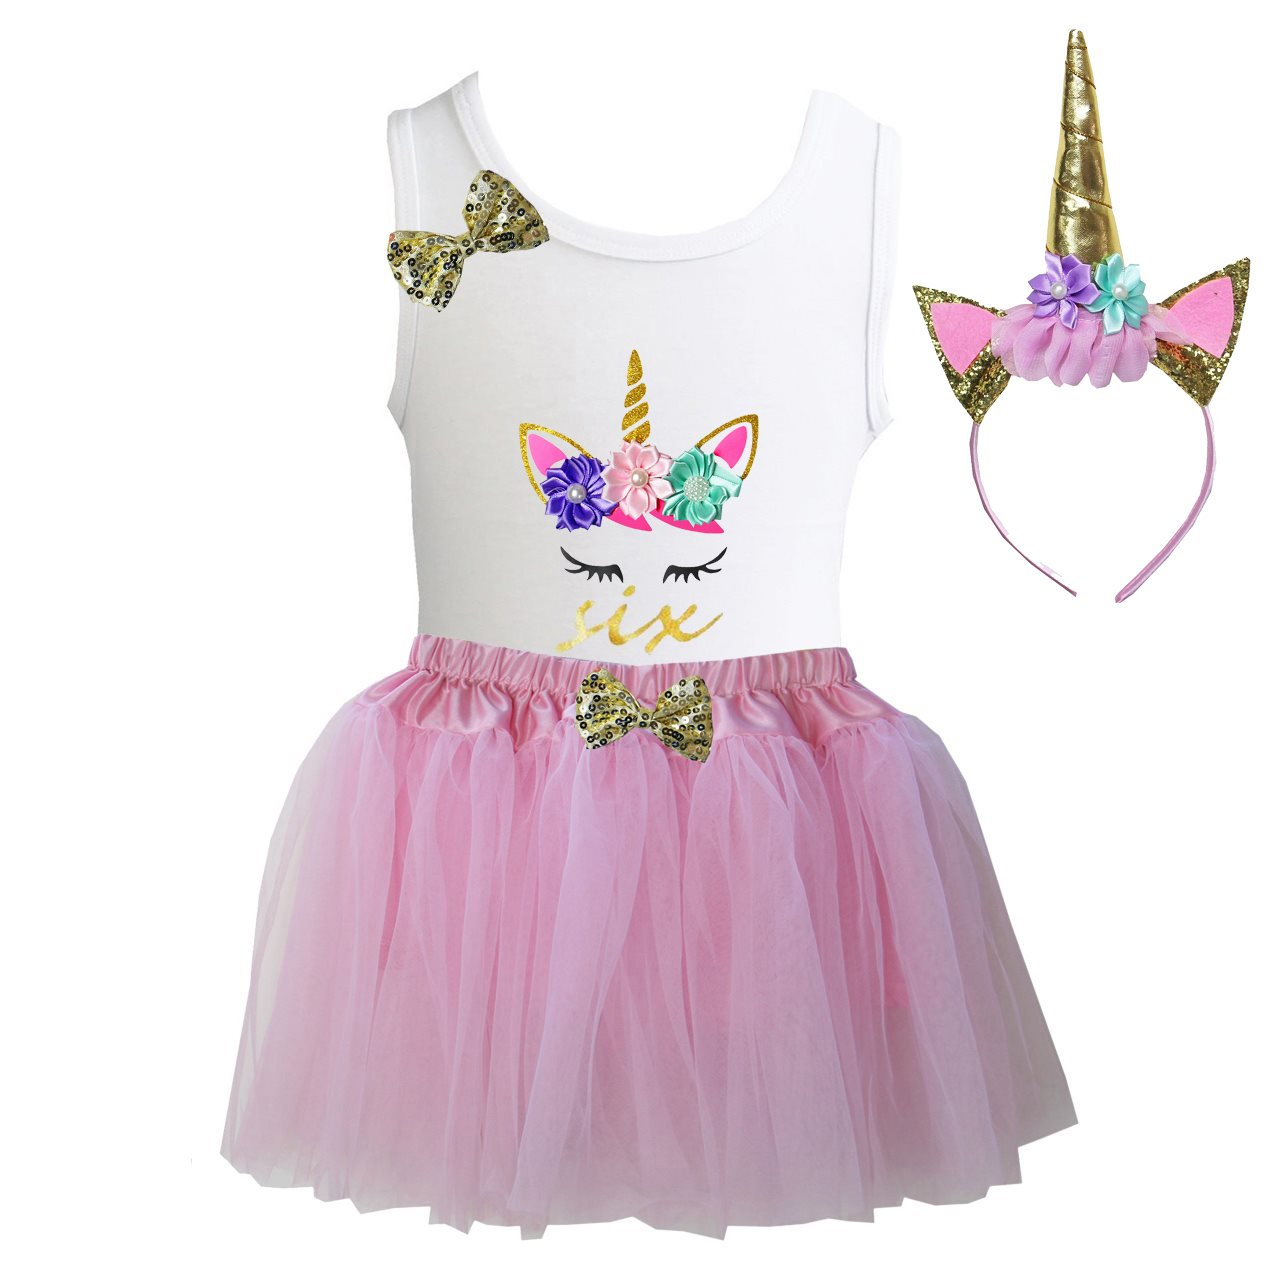 Kirei Sui Girls Light Pink Tulle Tutu Birthday Unicorn Tank Top & Headband DUCF1WEB06GOHB